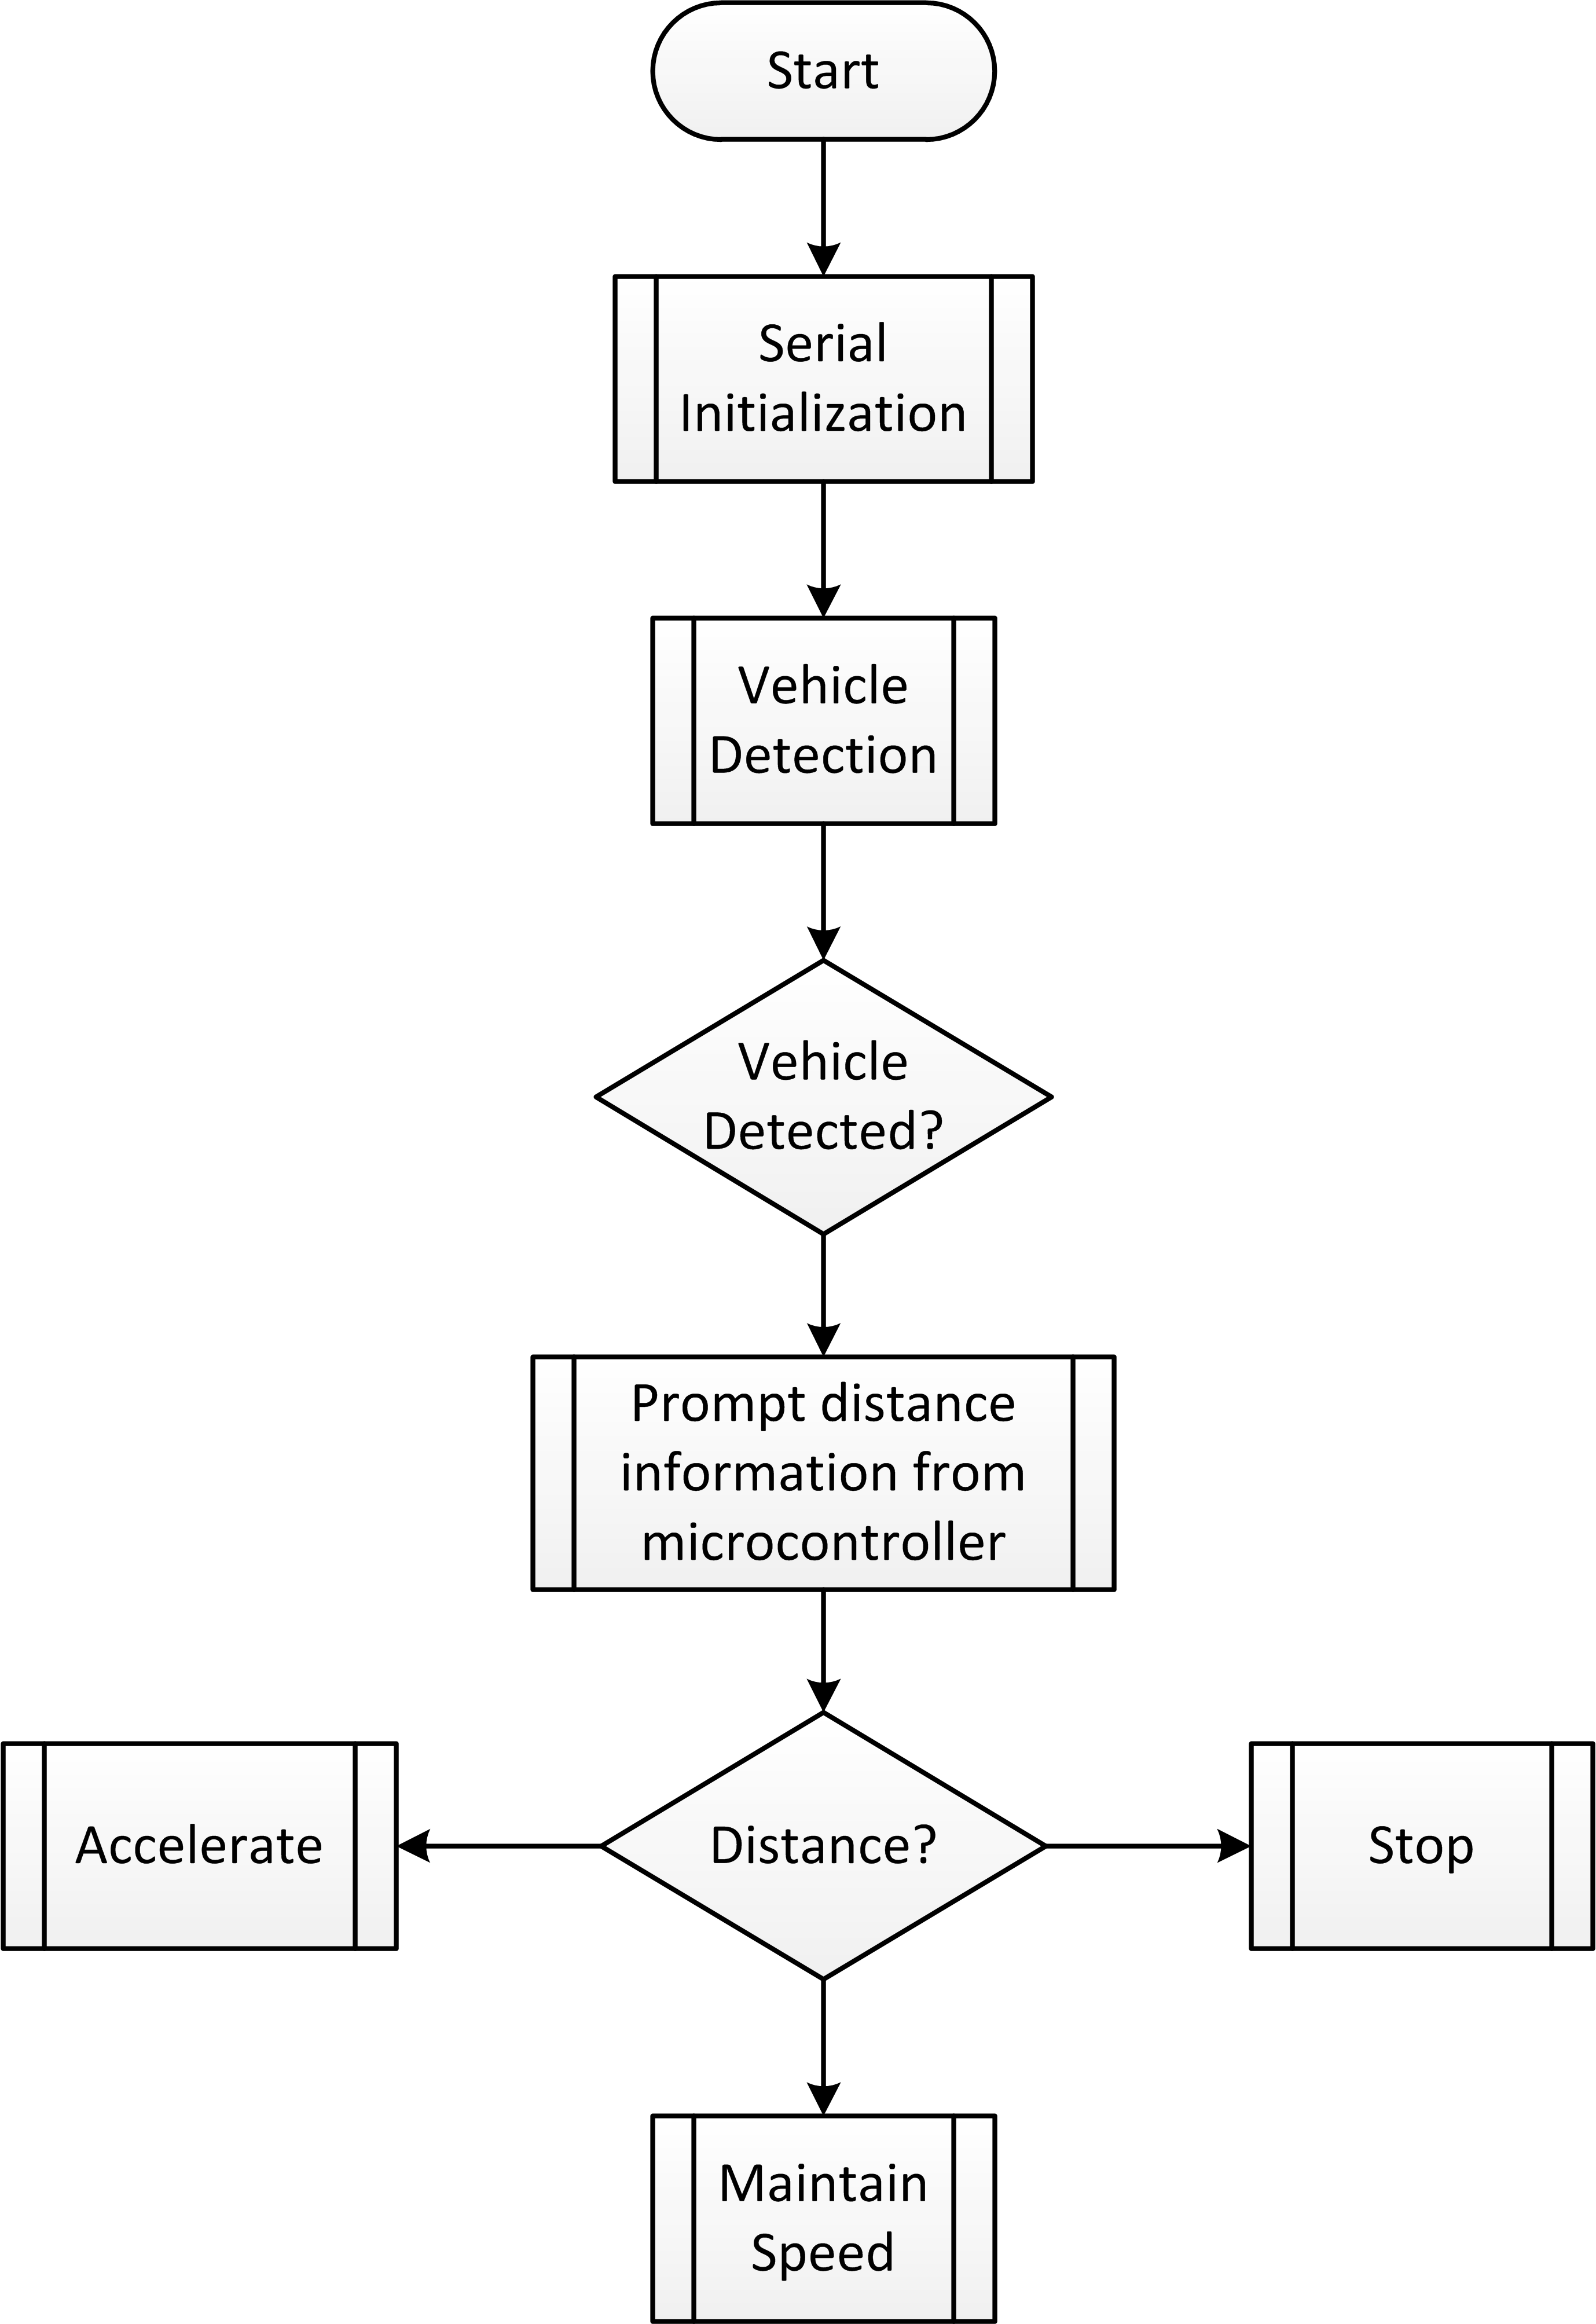 Jacr Alternative Vision Approach To Ground Vehicle Detection Uml Statechart Diagram Example System Utilizing Single Board Computer Sbc For Motor Control